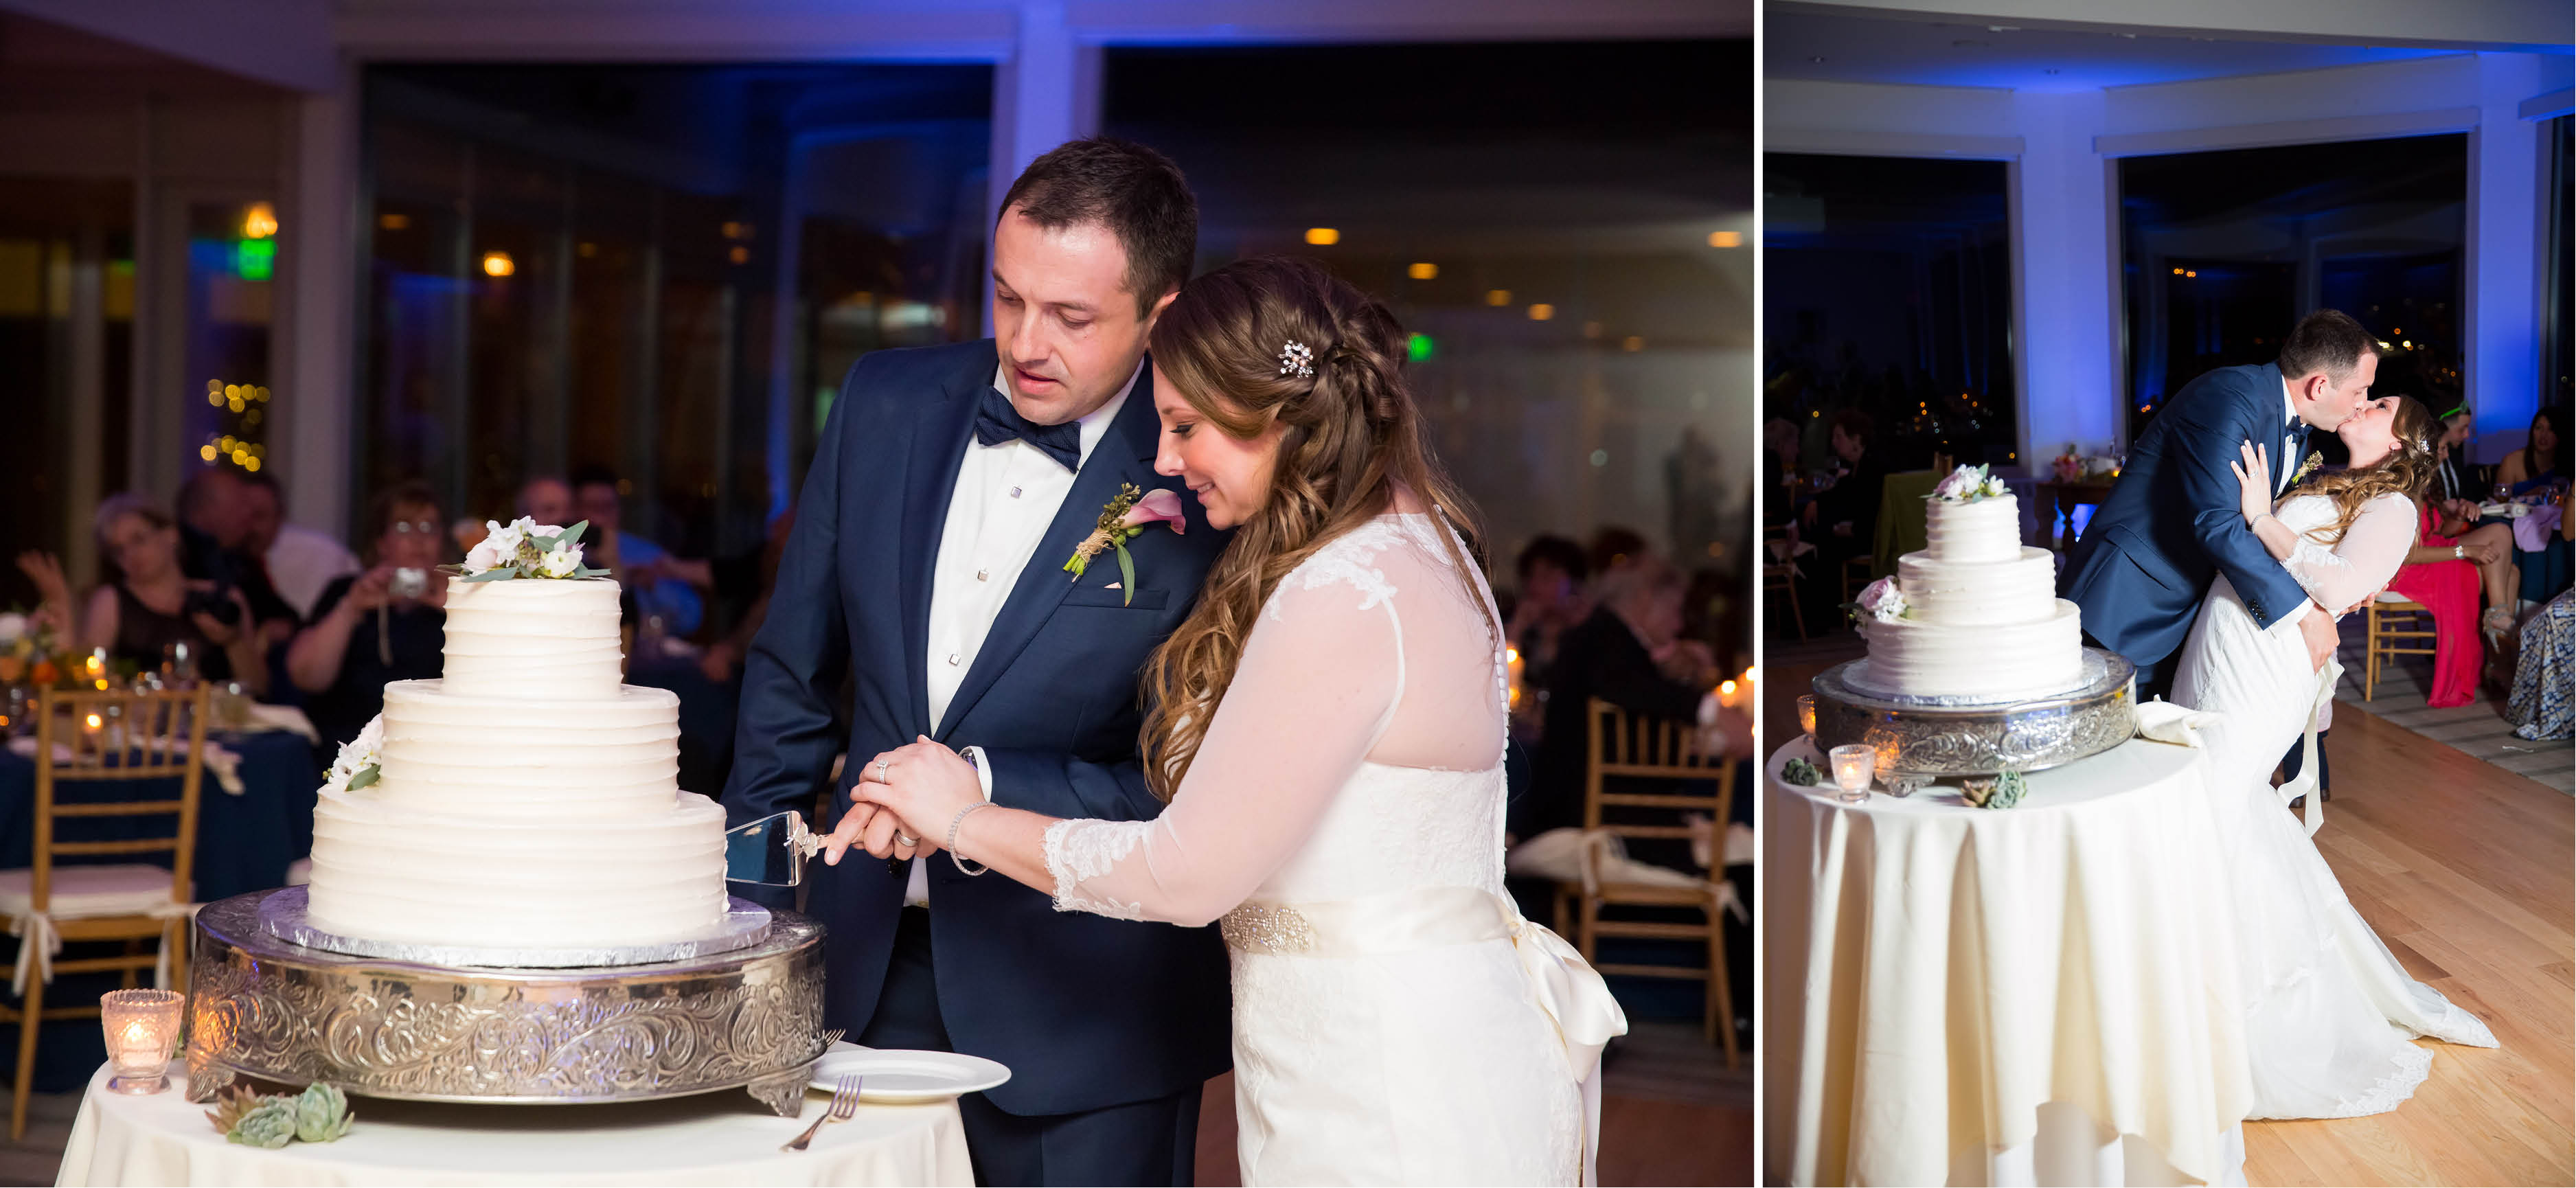 Emma_cleary_photography the Metropolitan Building wedding25